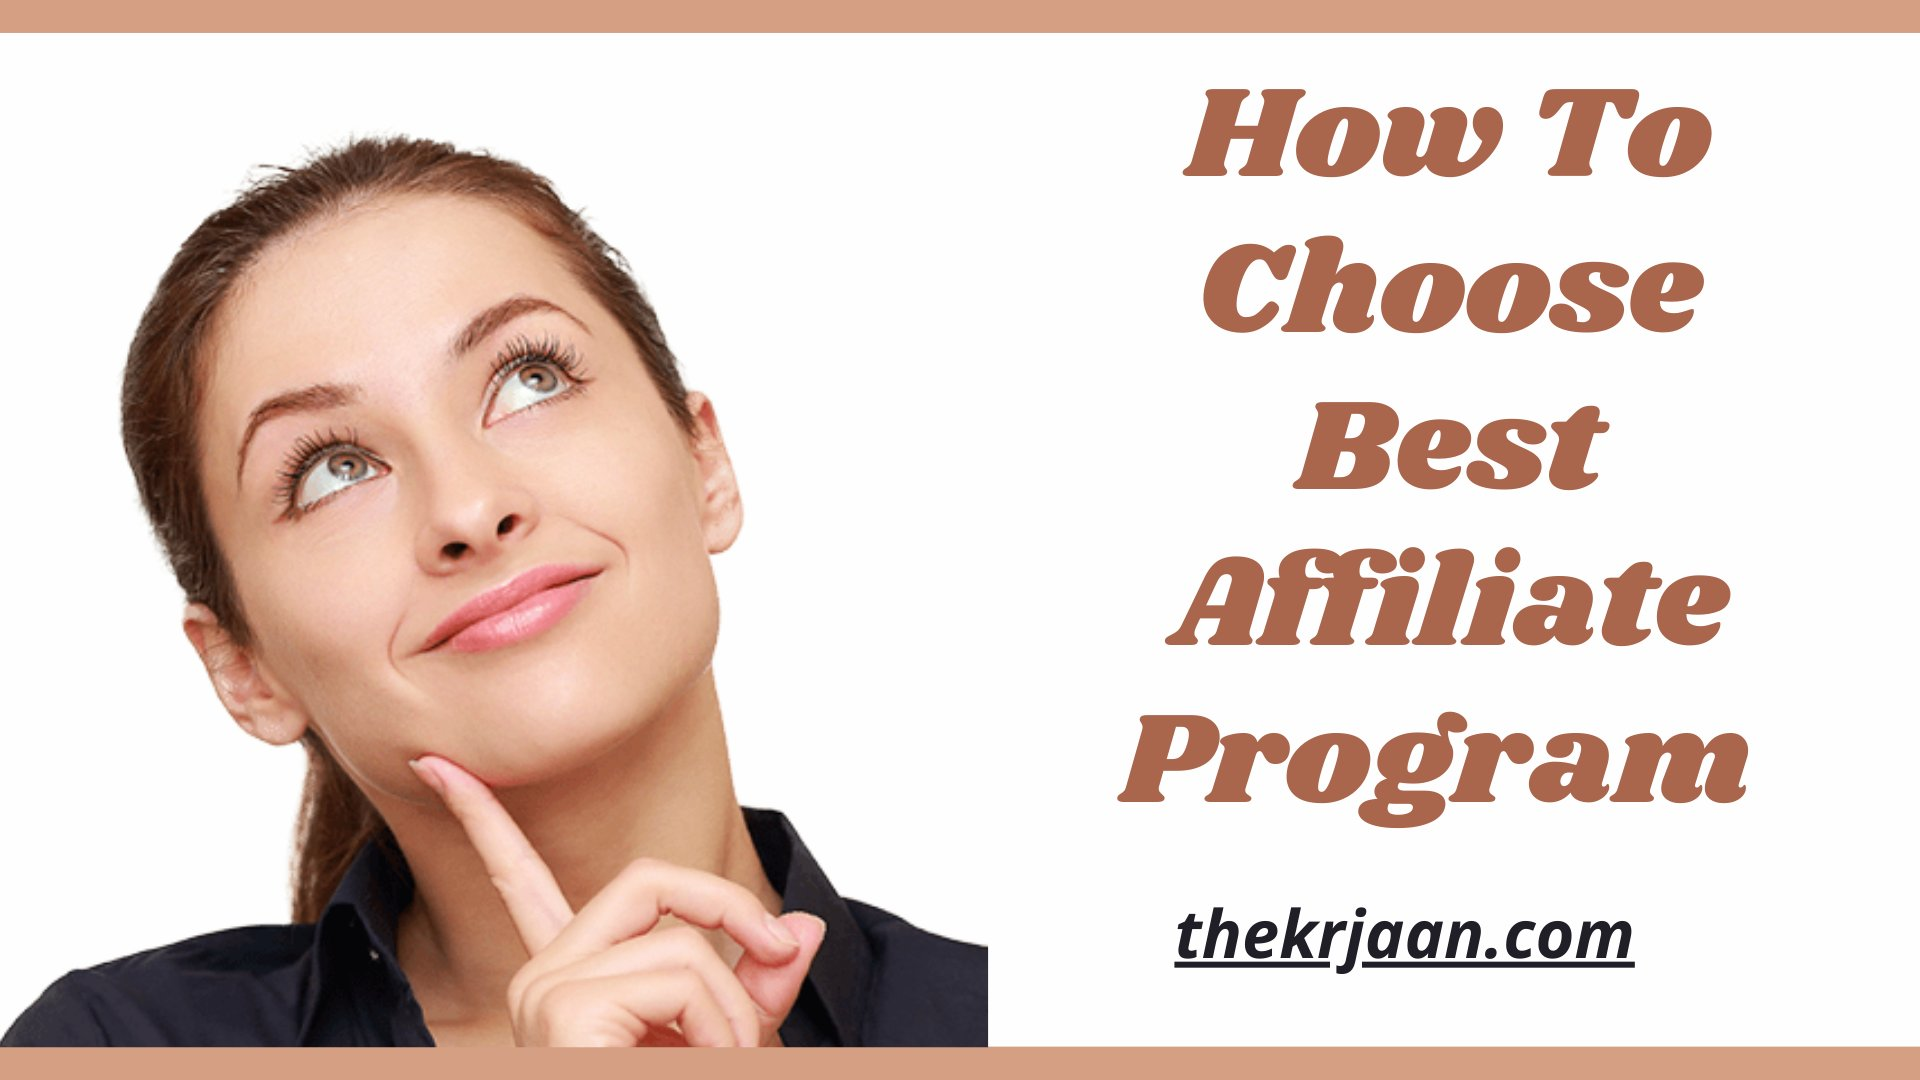 How To Choose Best Affiliate Program